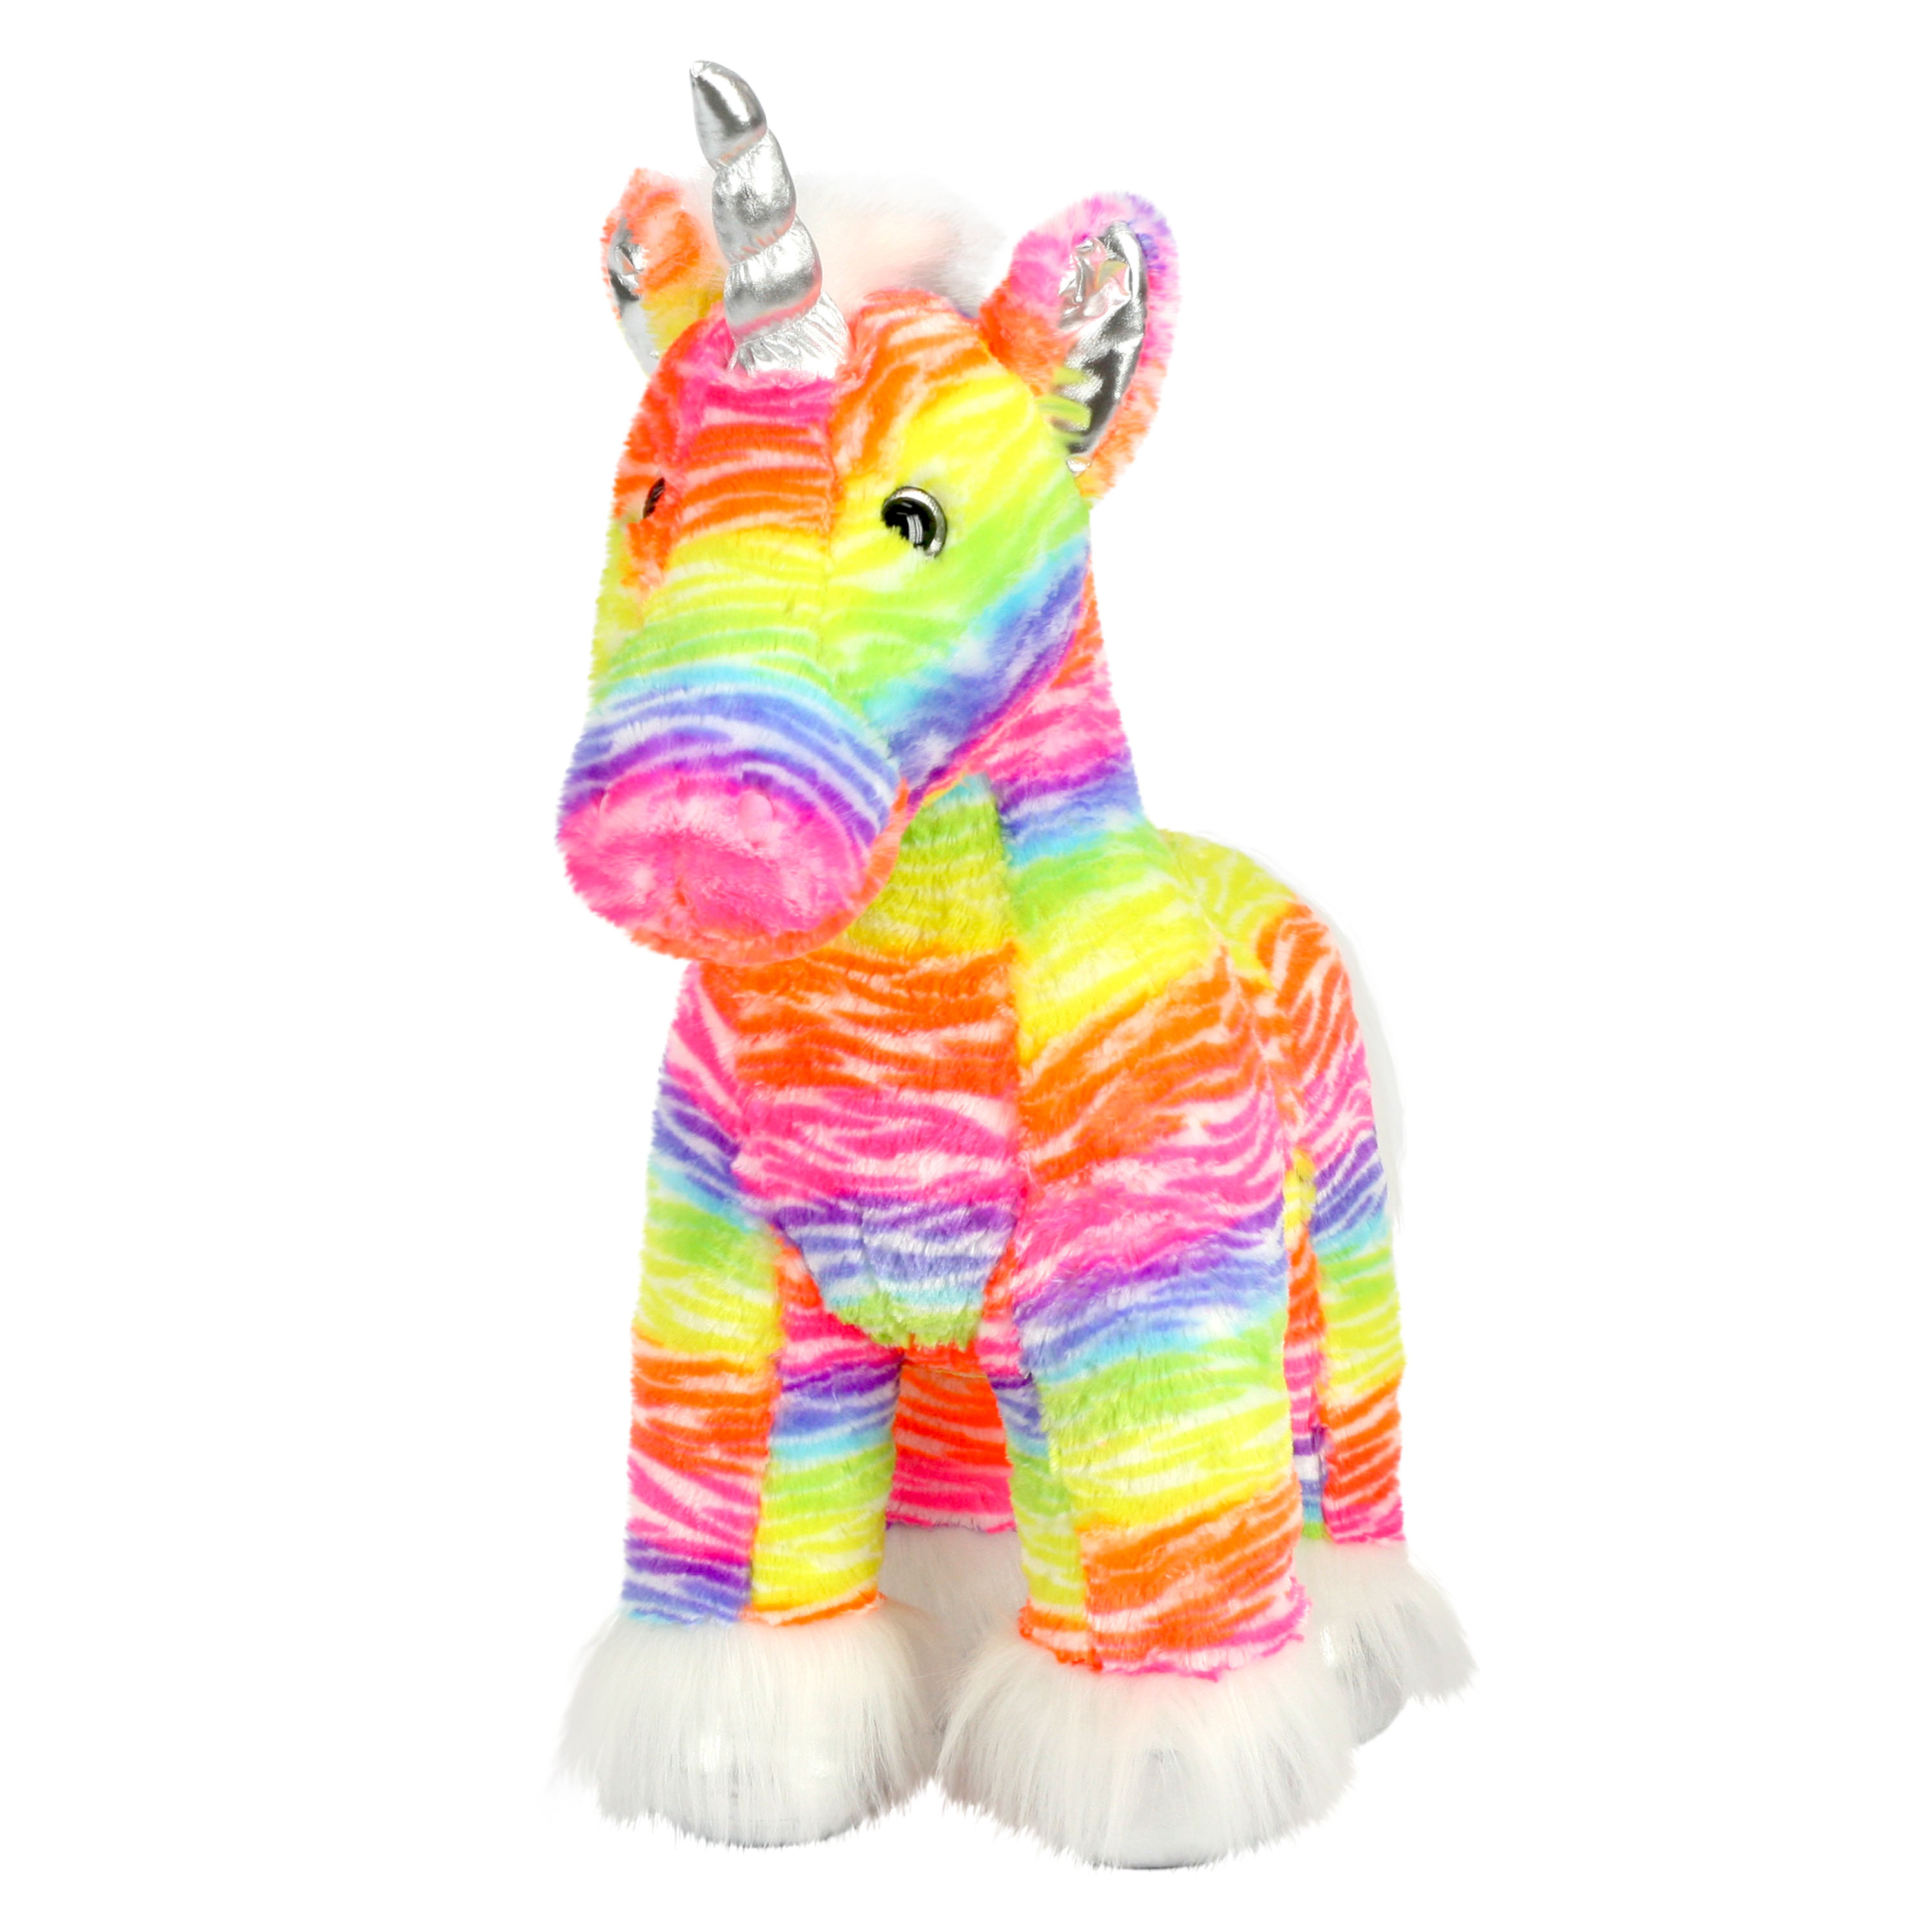 "Way To Celebrate 24"" Valentines XL Sitting Plush Toy - Unicorn"